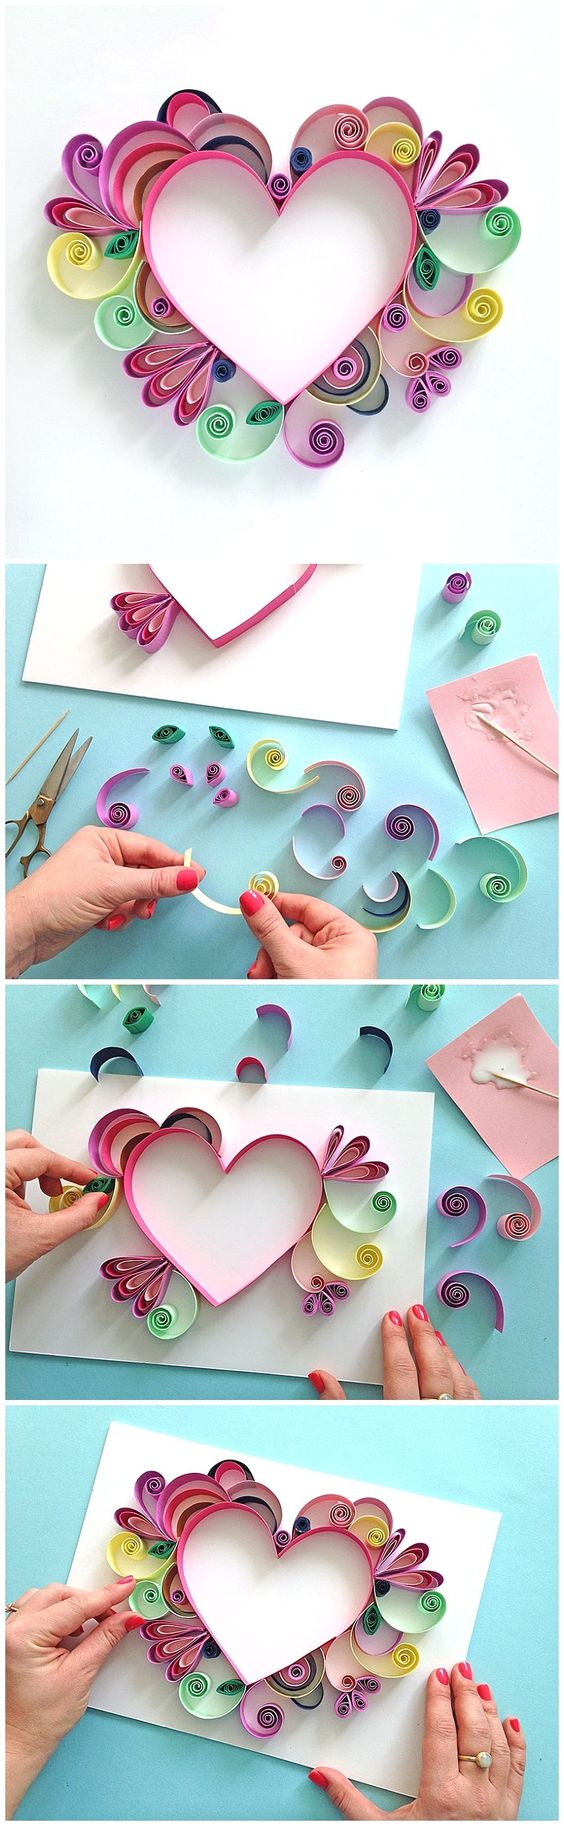 Heart Shaped Quilling Paper Craft